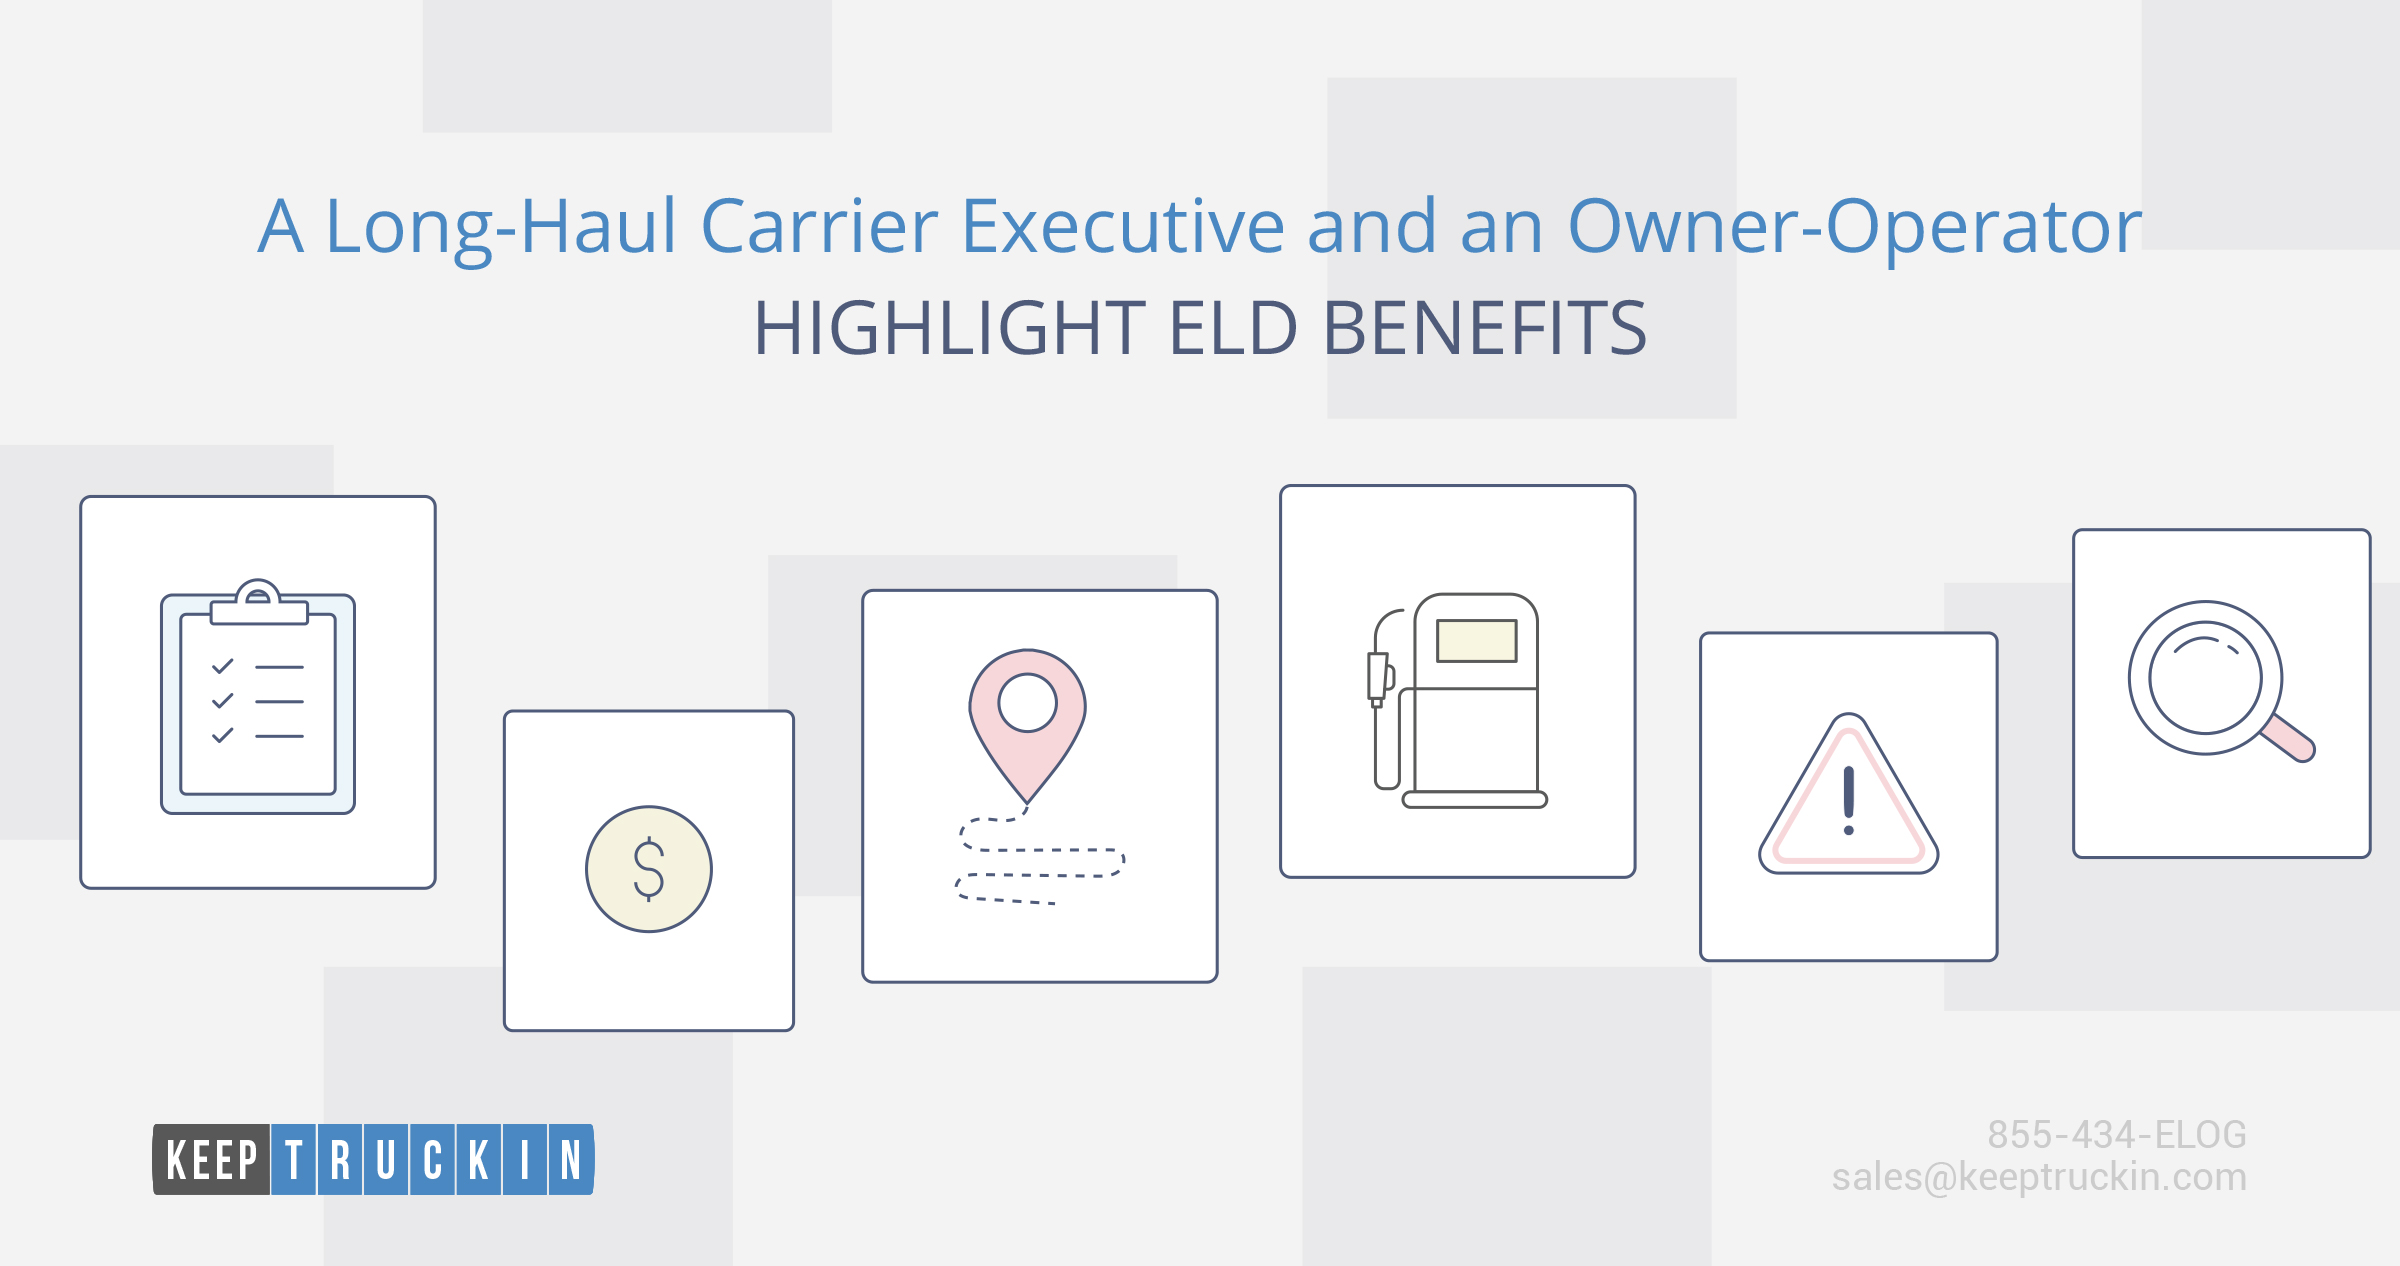 A Long-Haul Carrier Executive and an Owner-Operator Highlight ELD Benefits